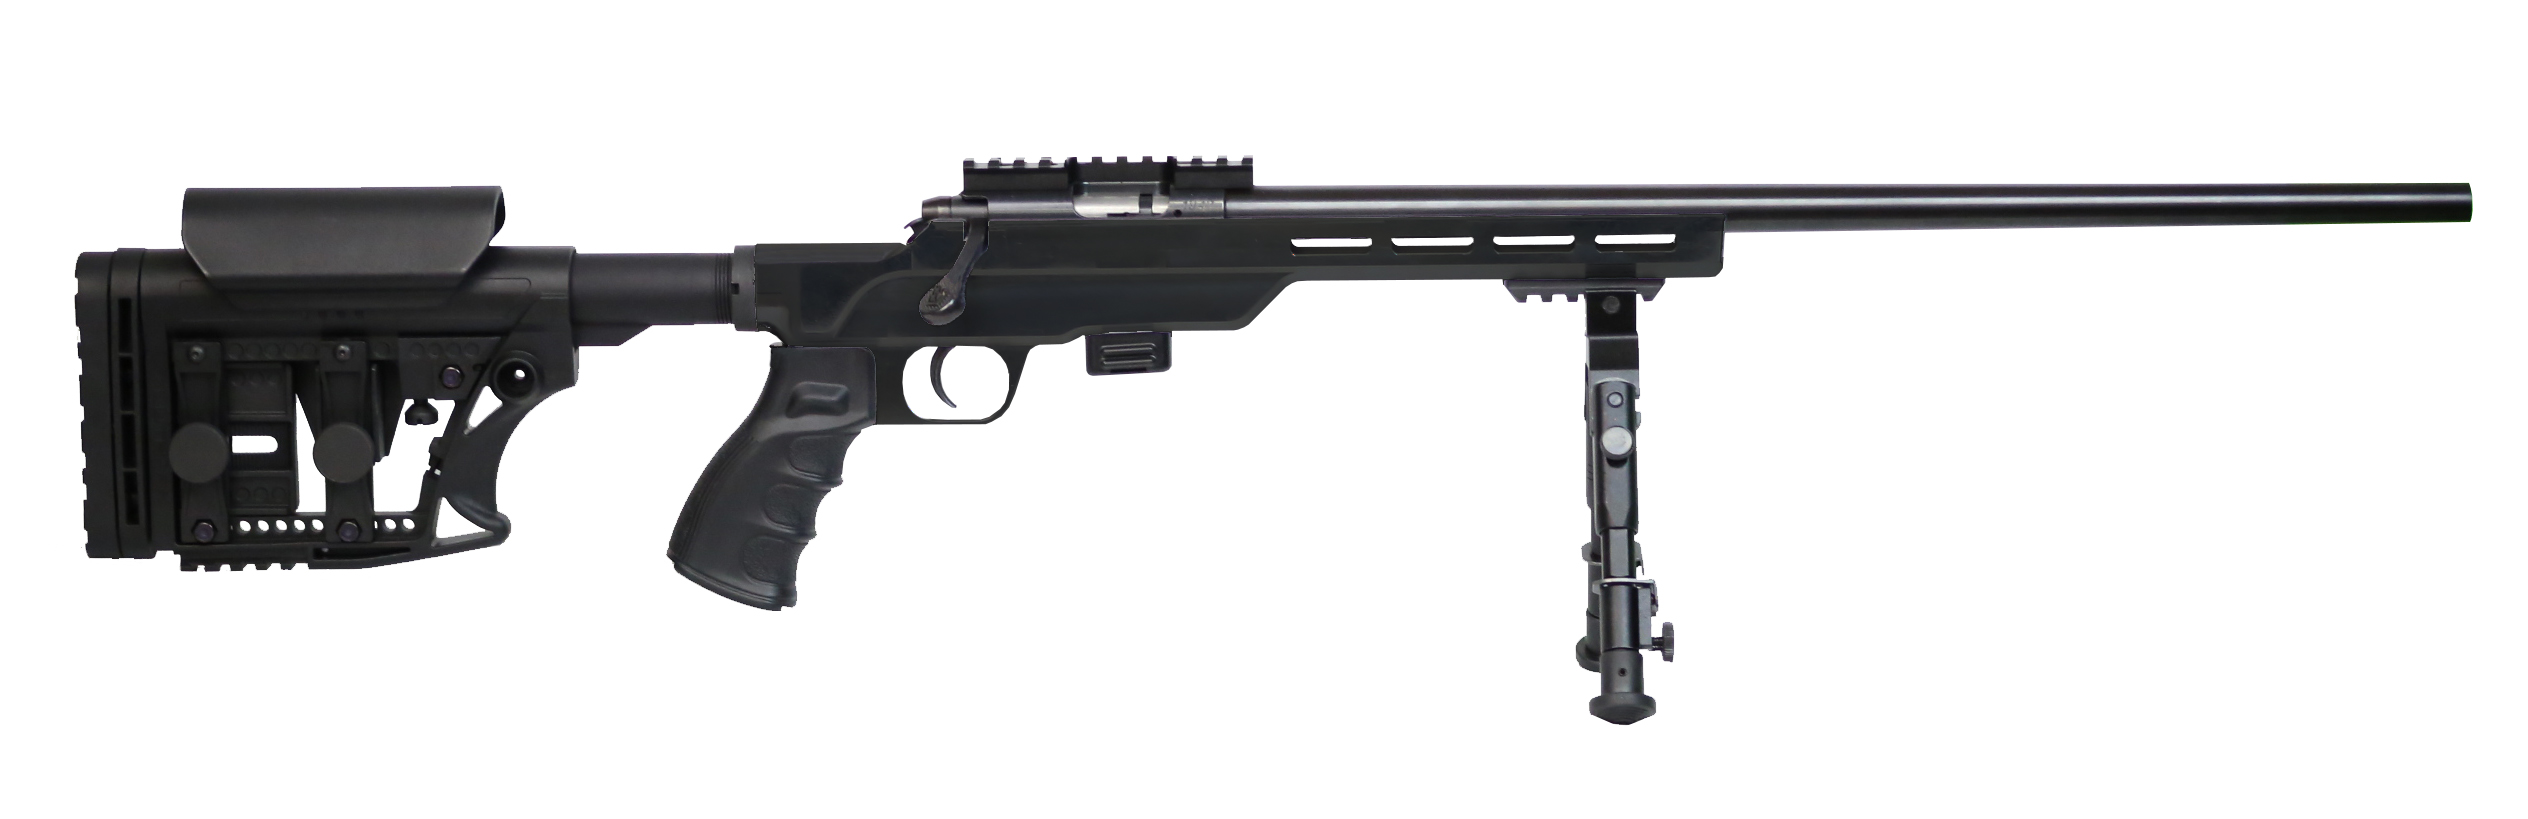 Keystone Sporting Arms 722 Precision Trainer 22 LR